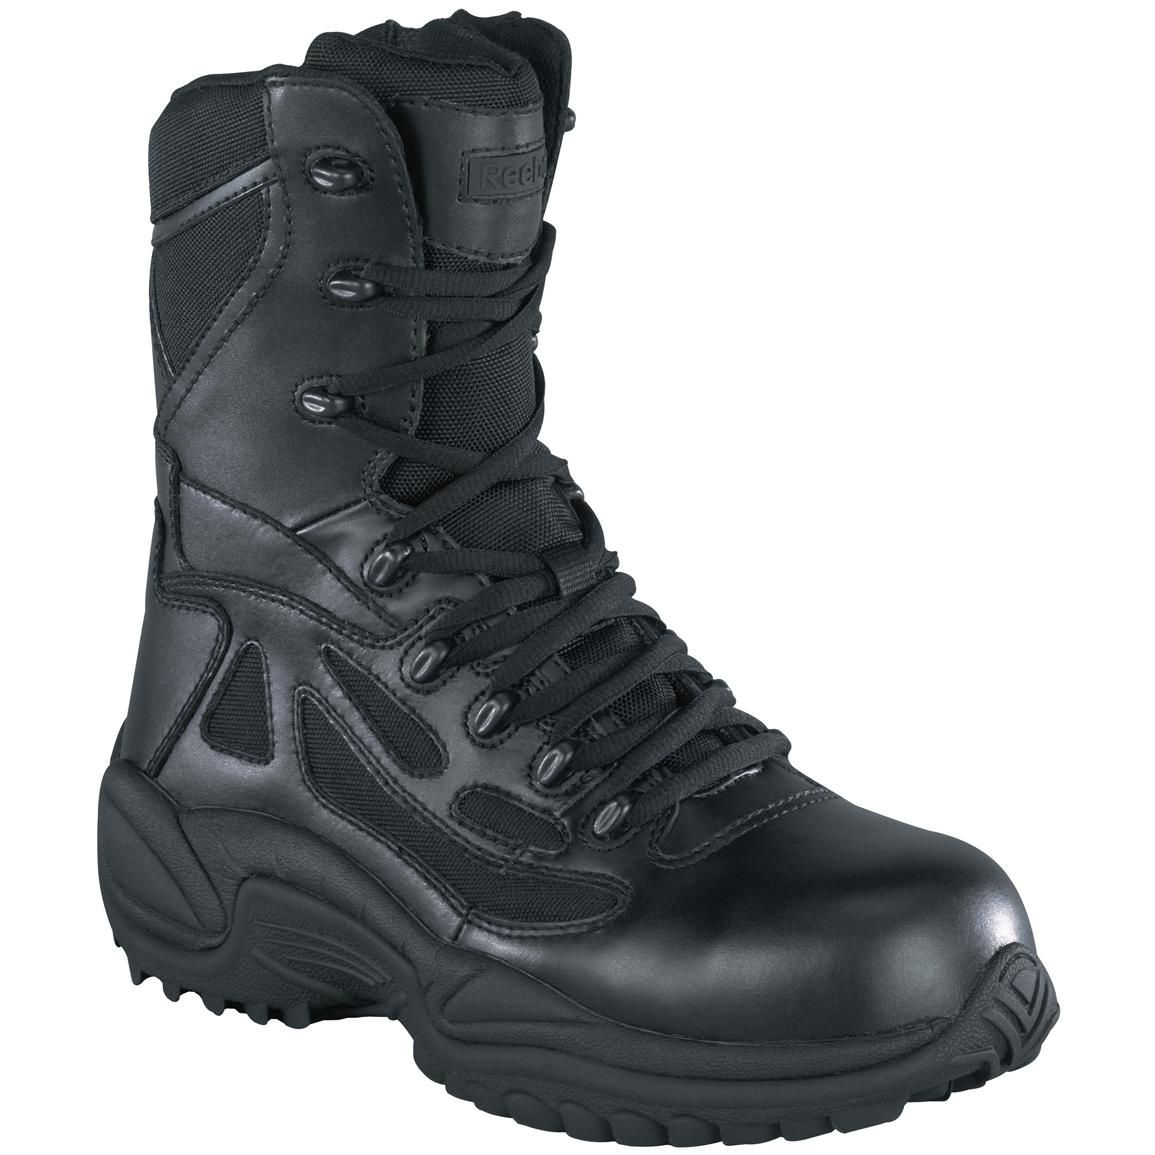 HQ ISSUE Men's Waterproof Side Zip Tactical Boots - 292023, Combat &  Tactical Boots at Sportsman's Guide